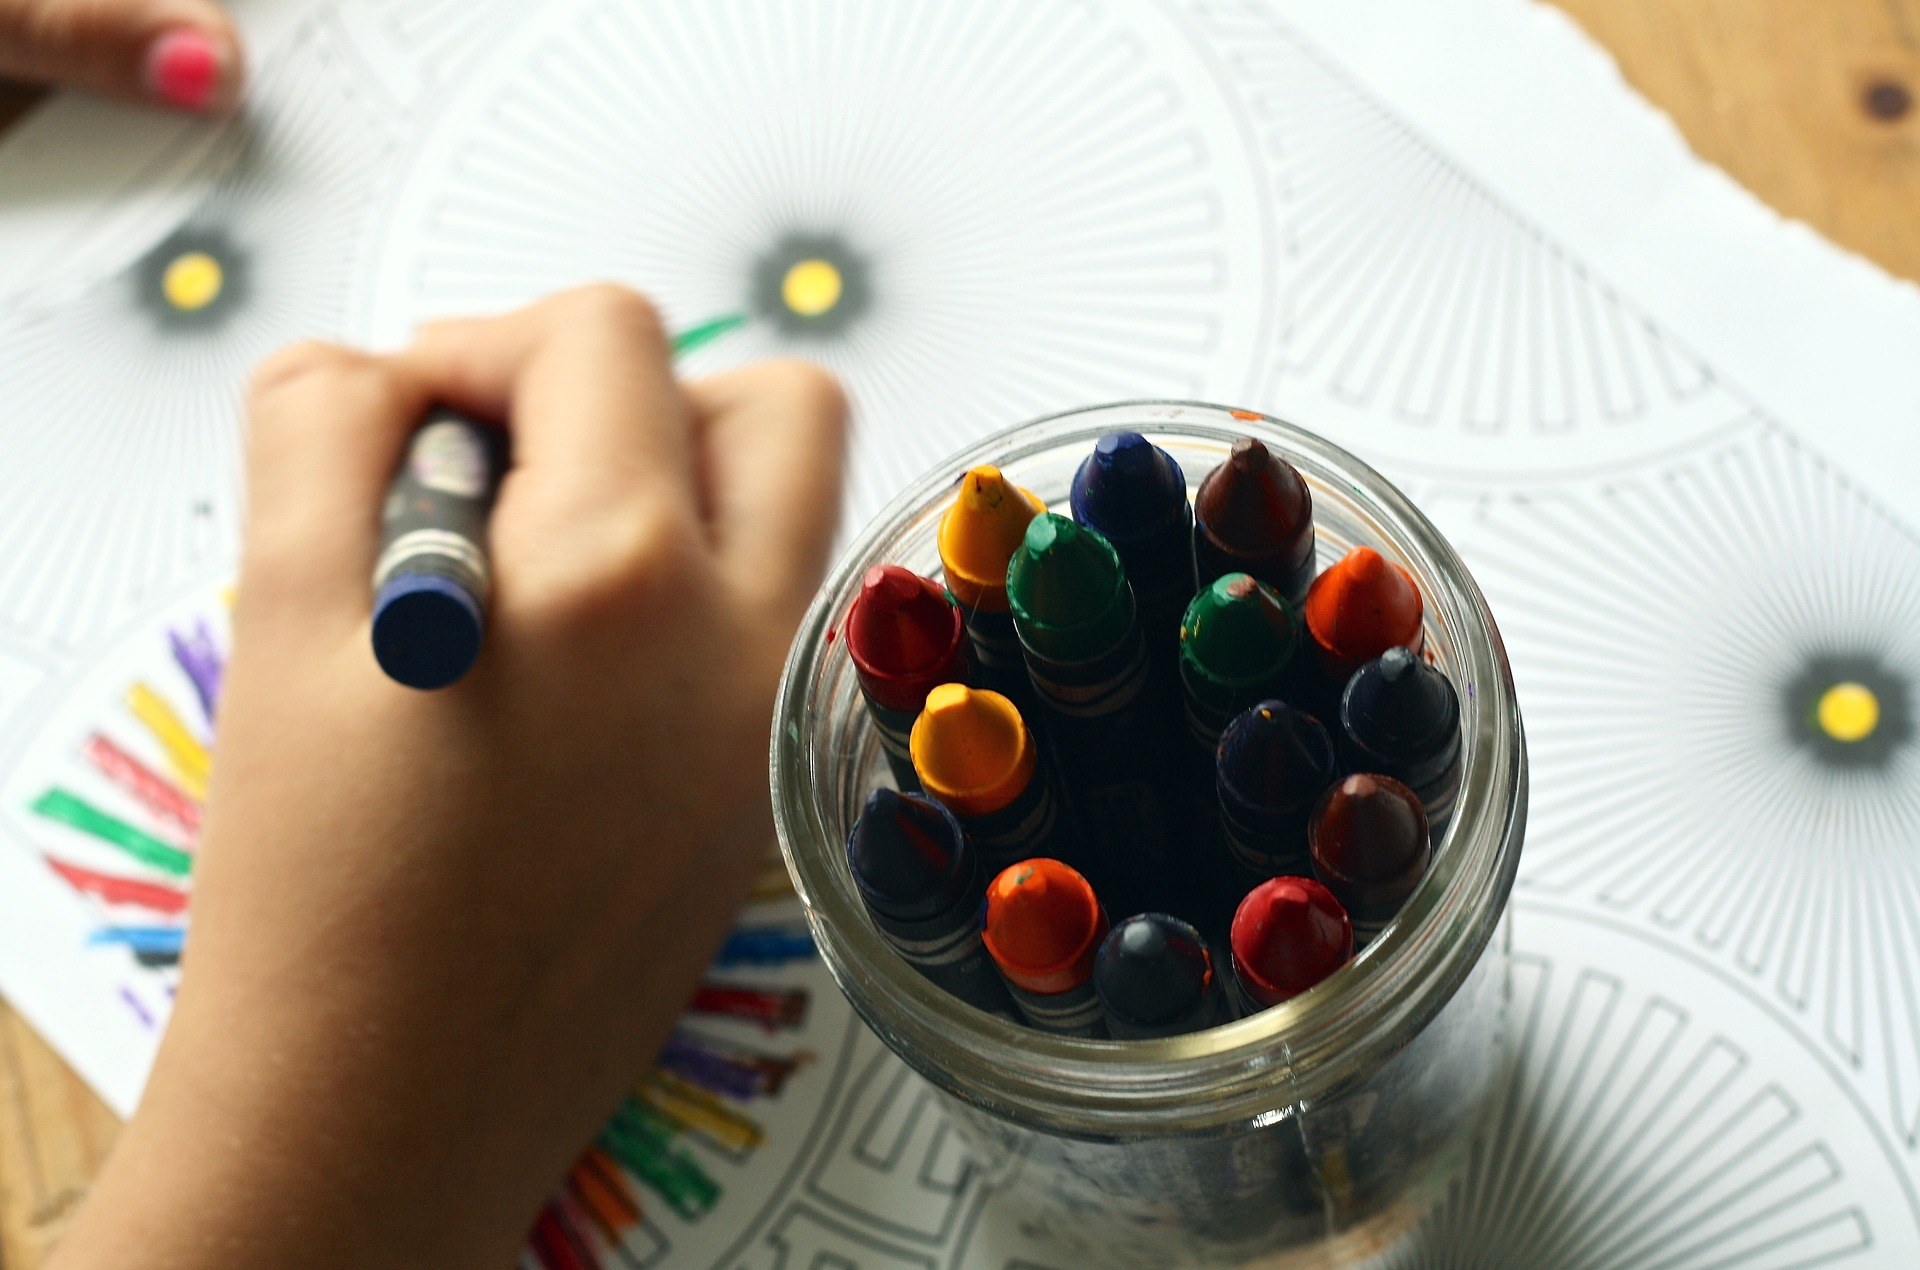 a child drawing on paper with crayons, which are being held in a cup